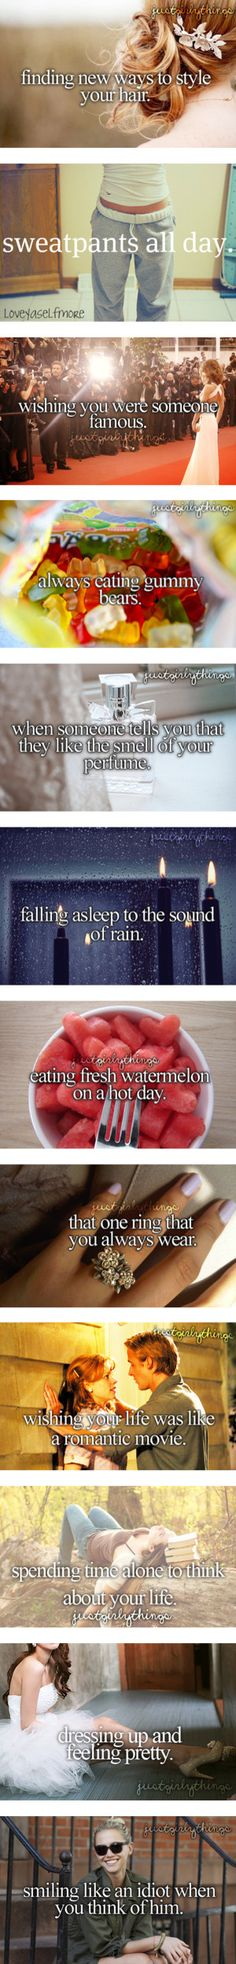 """Just the Girly Things"" by smileforflowers ❤ liked on Polyvore. True but I don't have a ring I always wear"